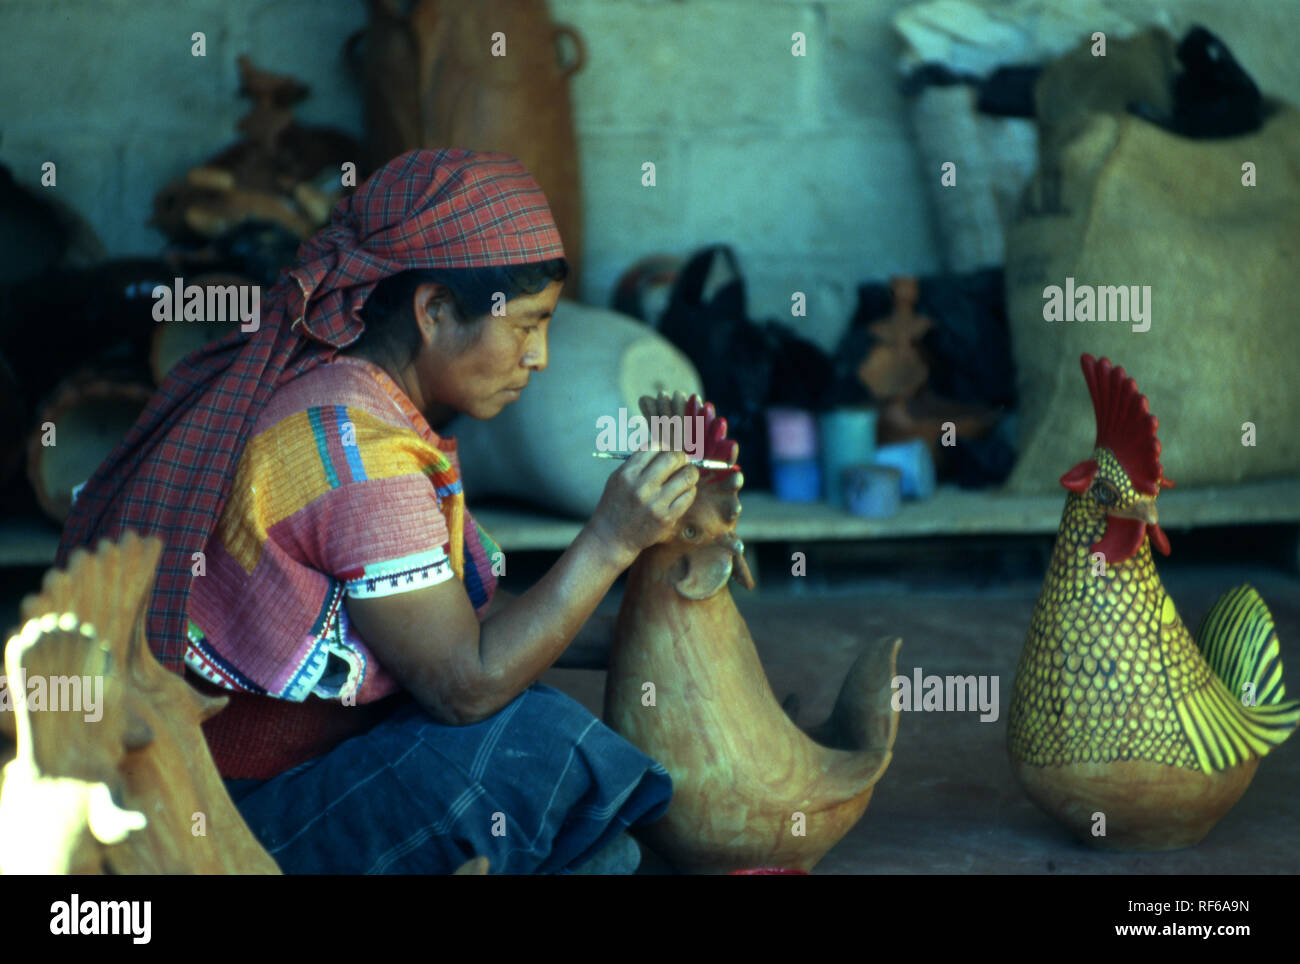 An indigenous Tzeltal woman paints 'animalitos' before they go on sale in Amatenango del Valle, Chiapas State, Mexico. - Stock Image